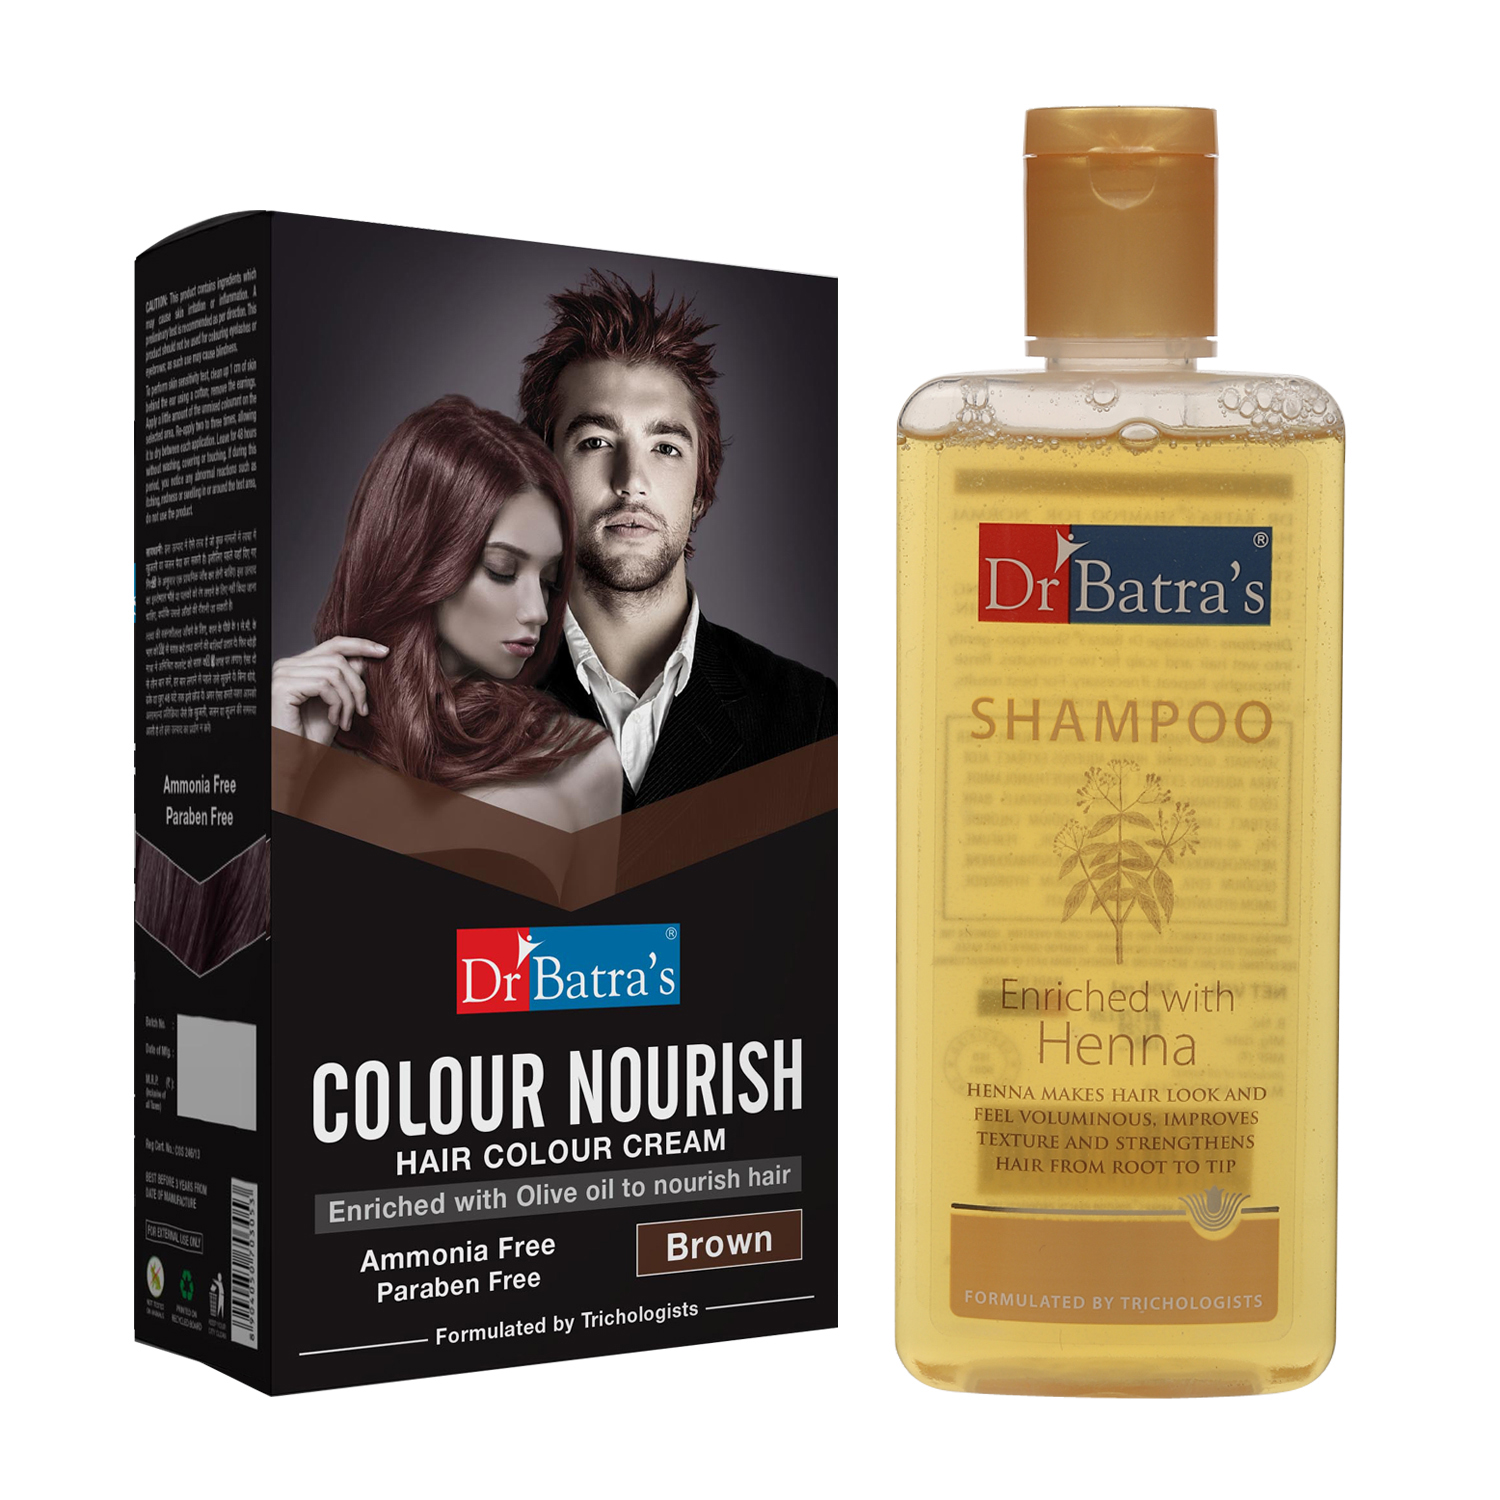 Dr Batra's   Dr Batra's Colour Nourish Hair Colour Cream - Brown 120 G and Normal Shampoo 200ml (Pack of 2 Men and Women)